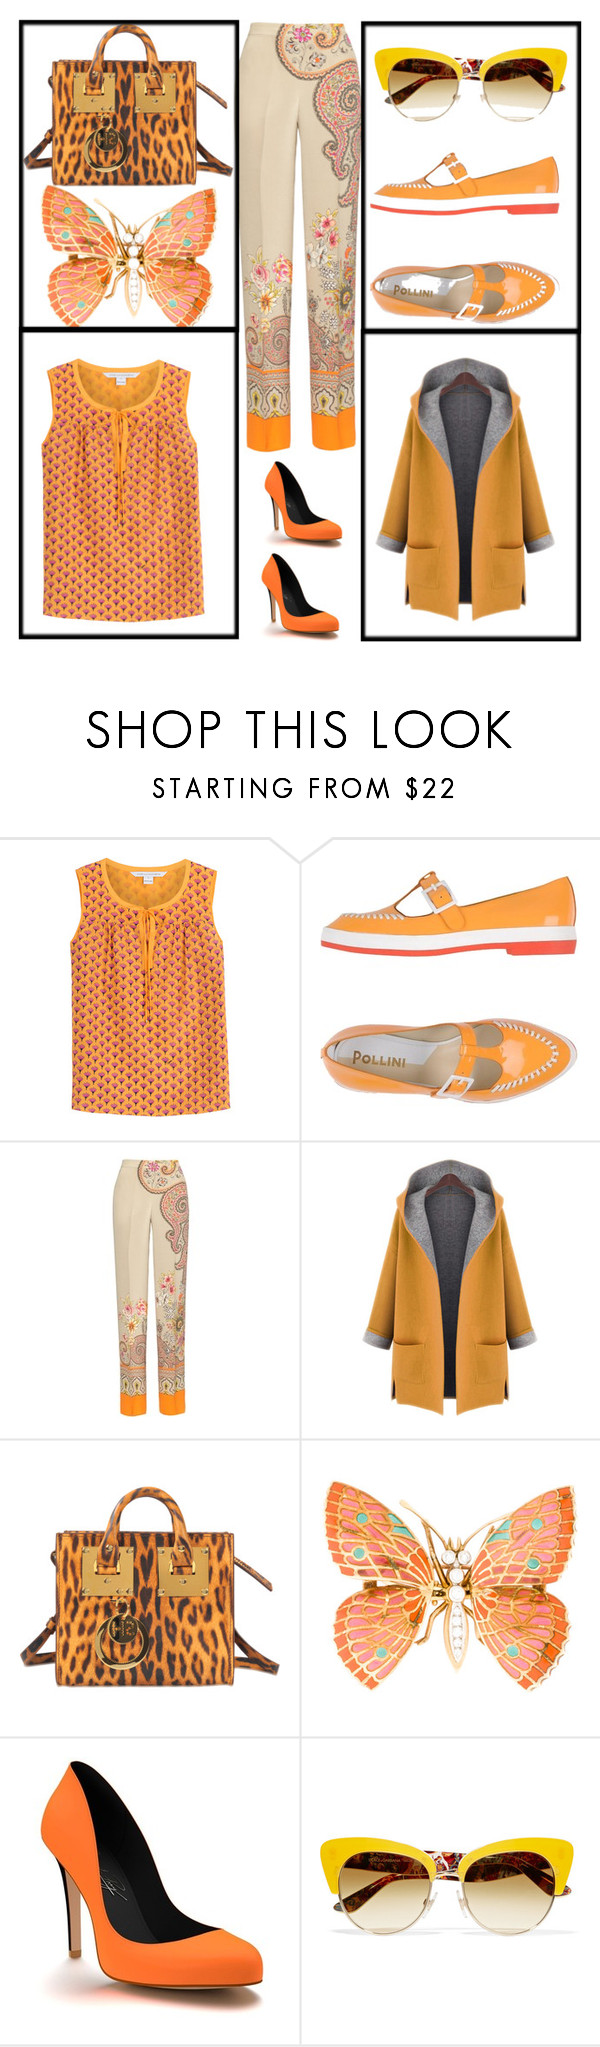 """""""🌻Floral print silky trouser 🌻"""" by jojoberryperry ❤ liked on Polyvore featuring Diane Von Furstenberg, Pollini, Etro, WithChic, Sophie Hulme, Shoes of Prey and Dolce&Gabbana"""